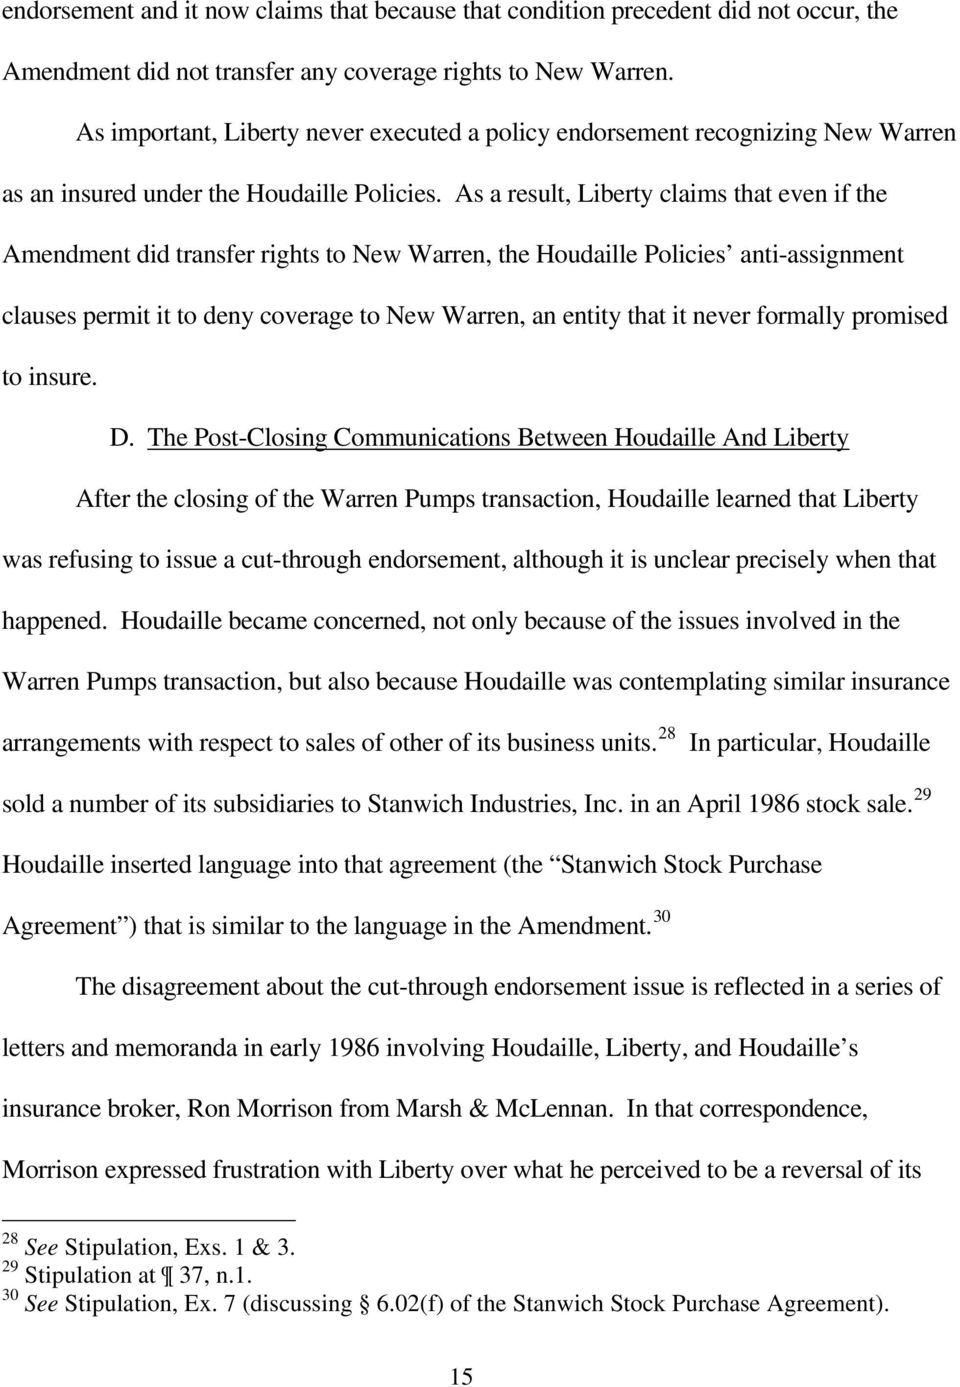 As a result, Liberty claims that even if the Amendment did transfer rights to New Warren, the Houdaille Policies anti-assignment clauses permit it to deny coverage to New Warren, an entity that it